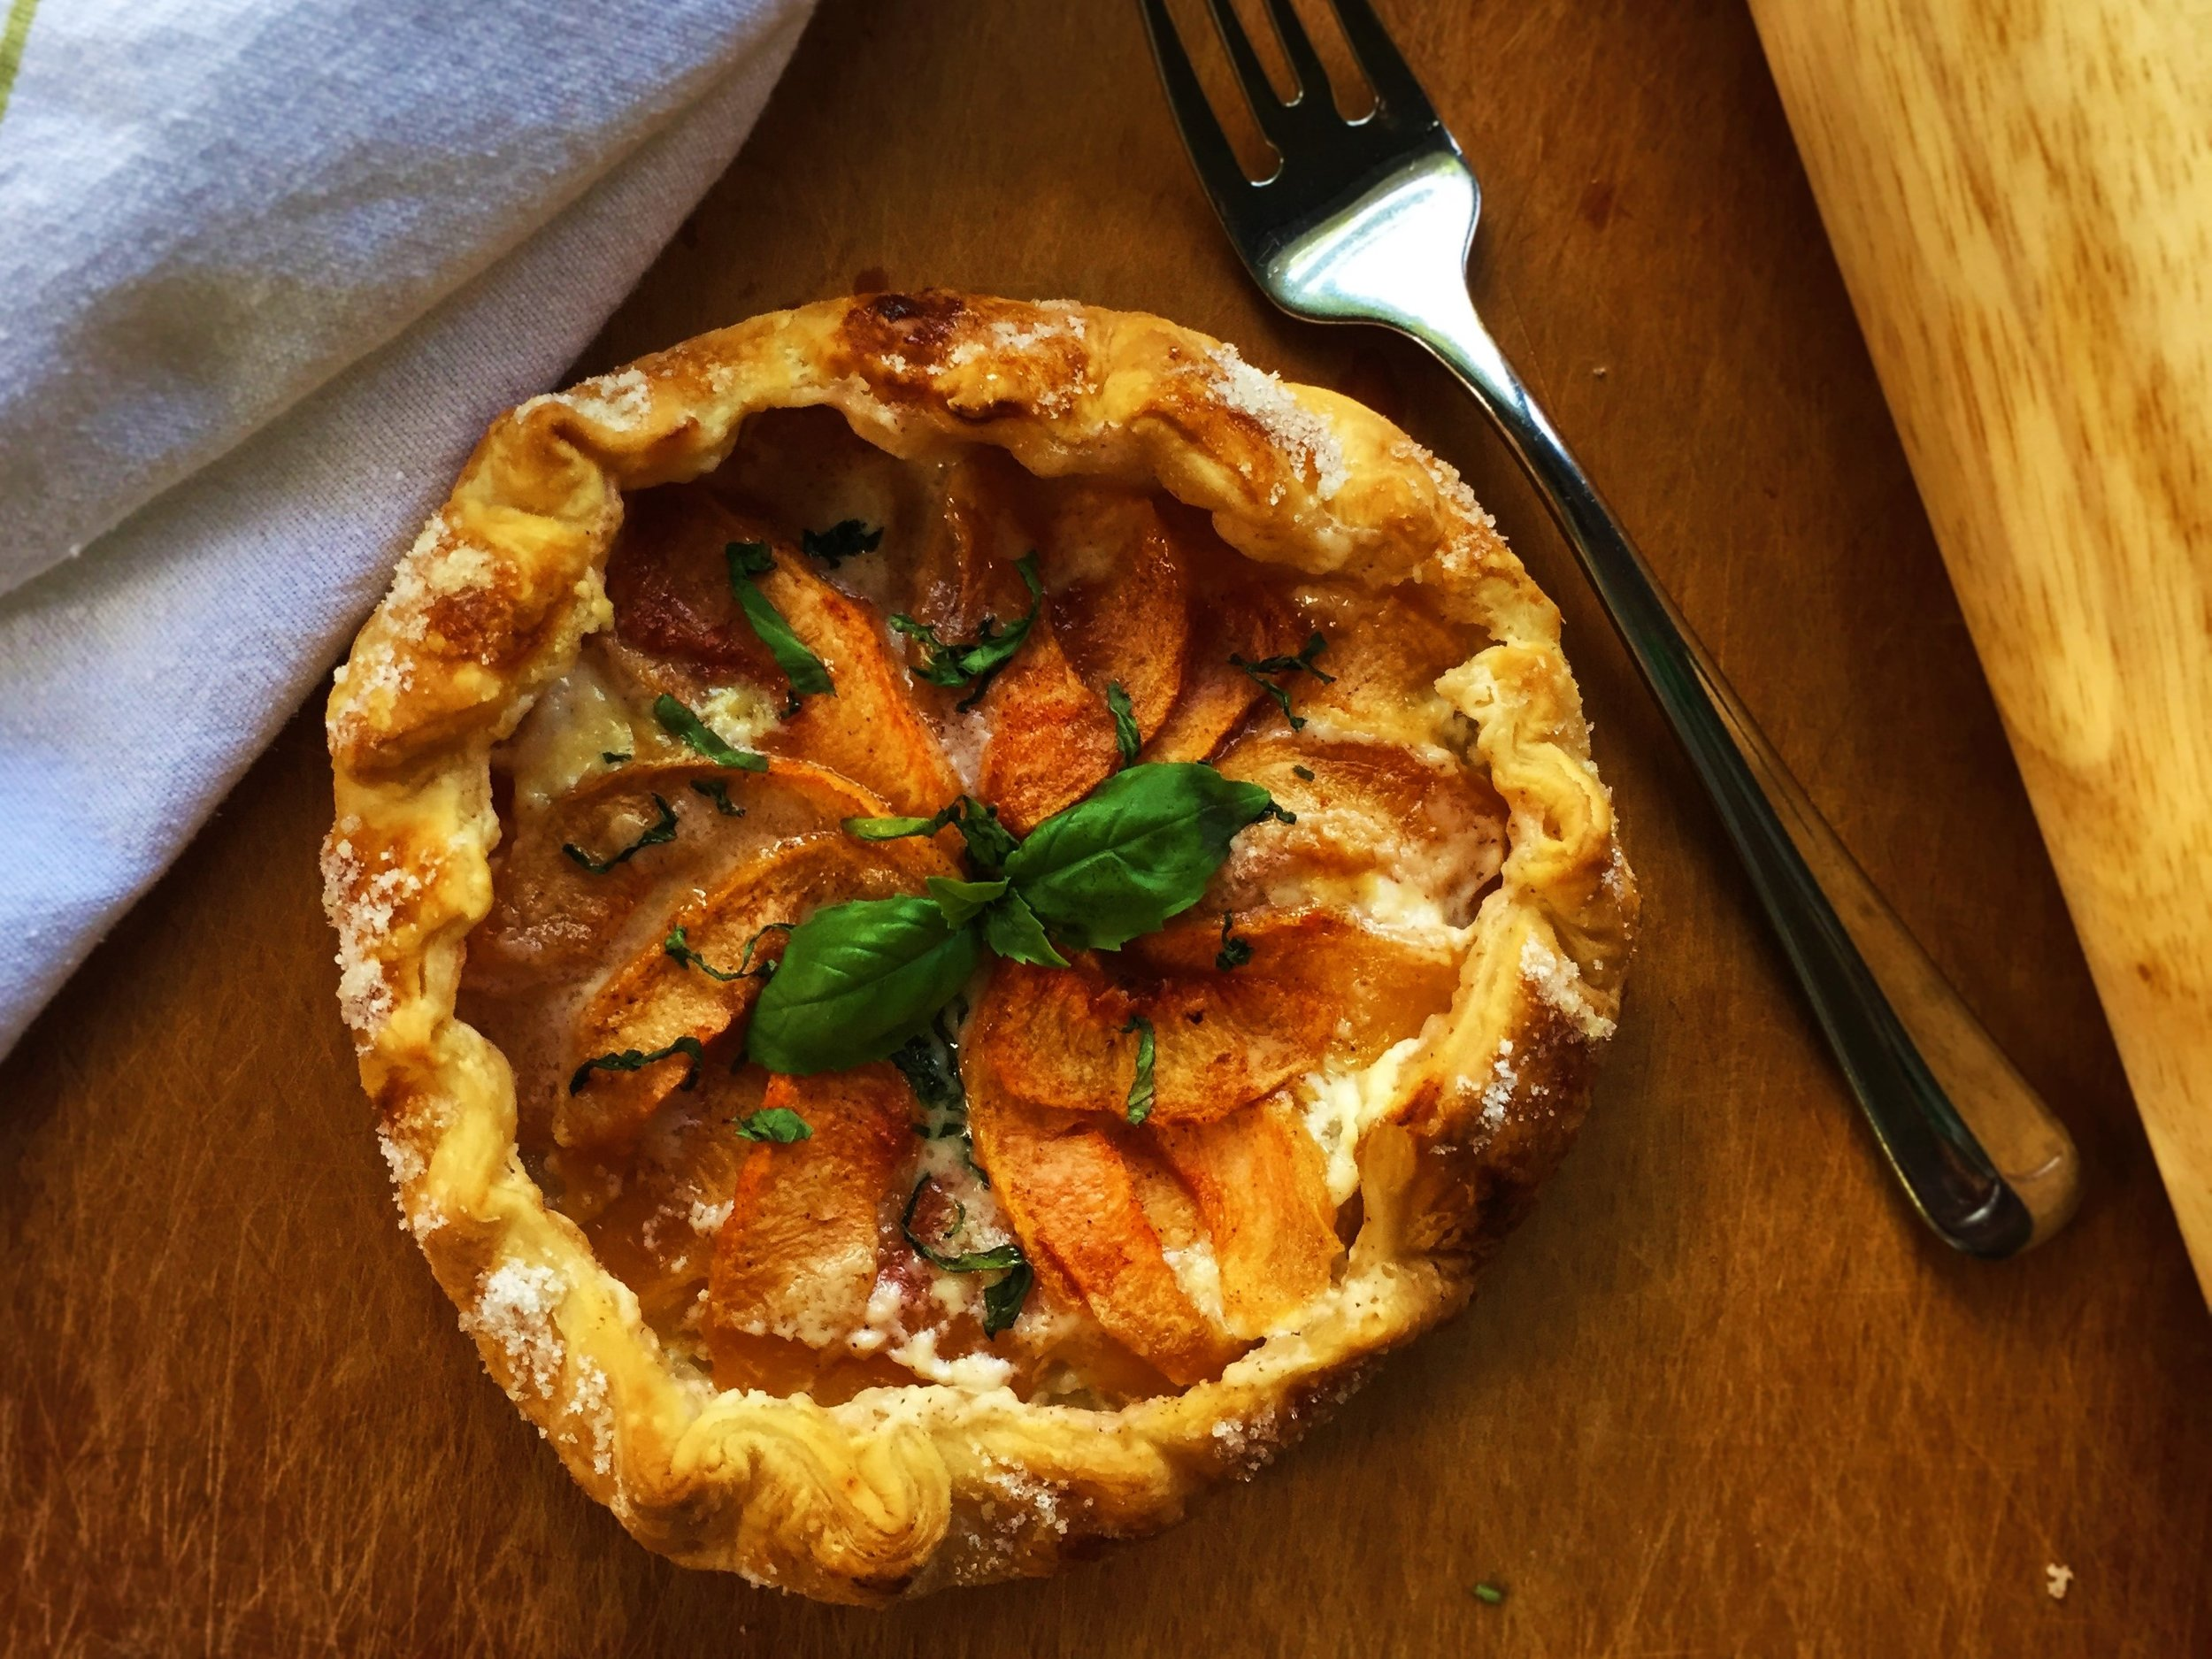 Basil-Peach Galette made in the Adventure Kitchen.